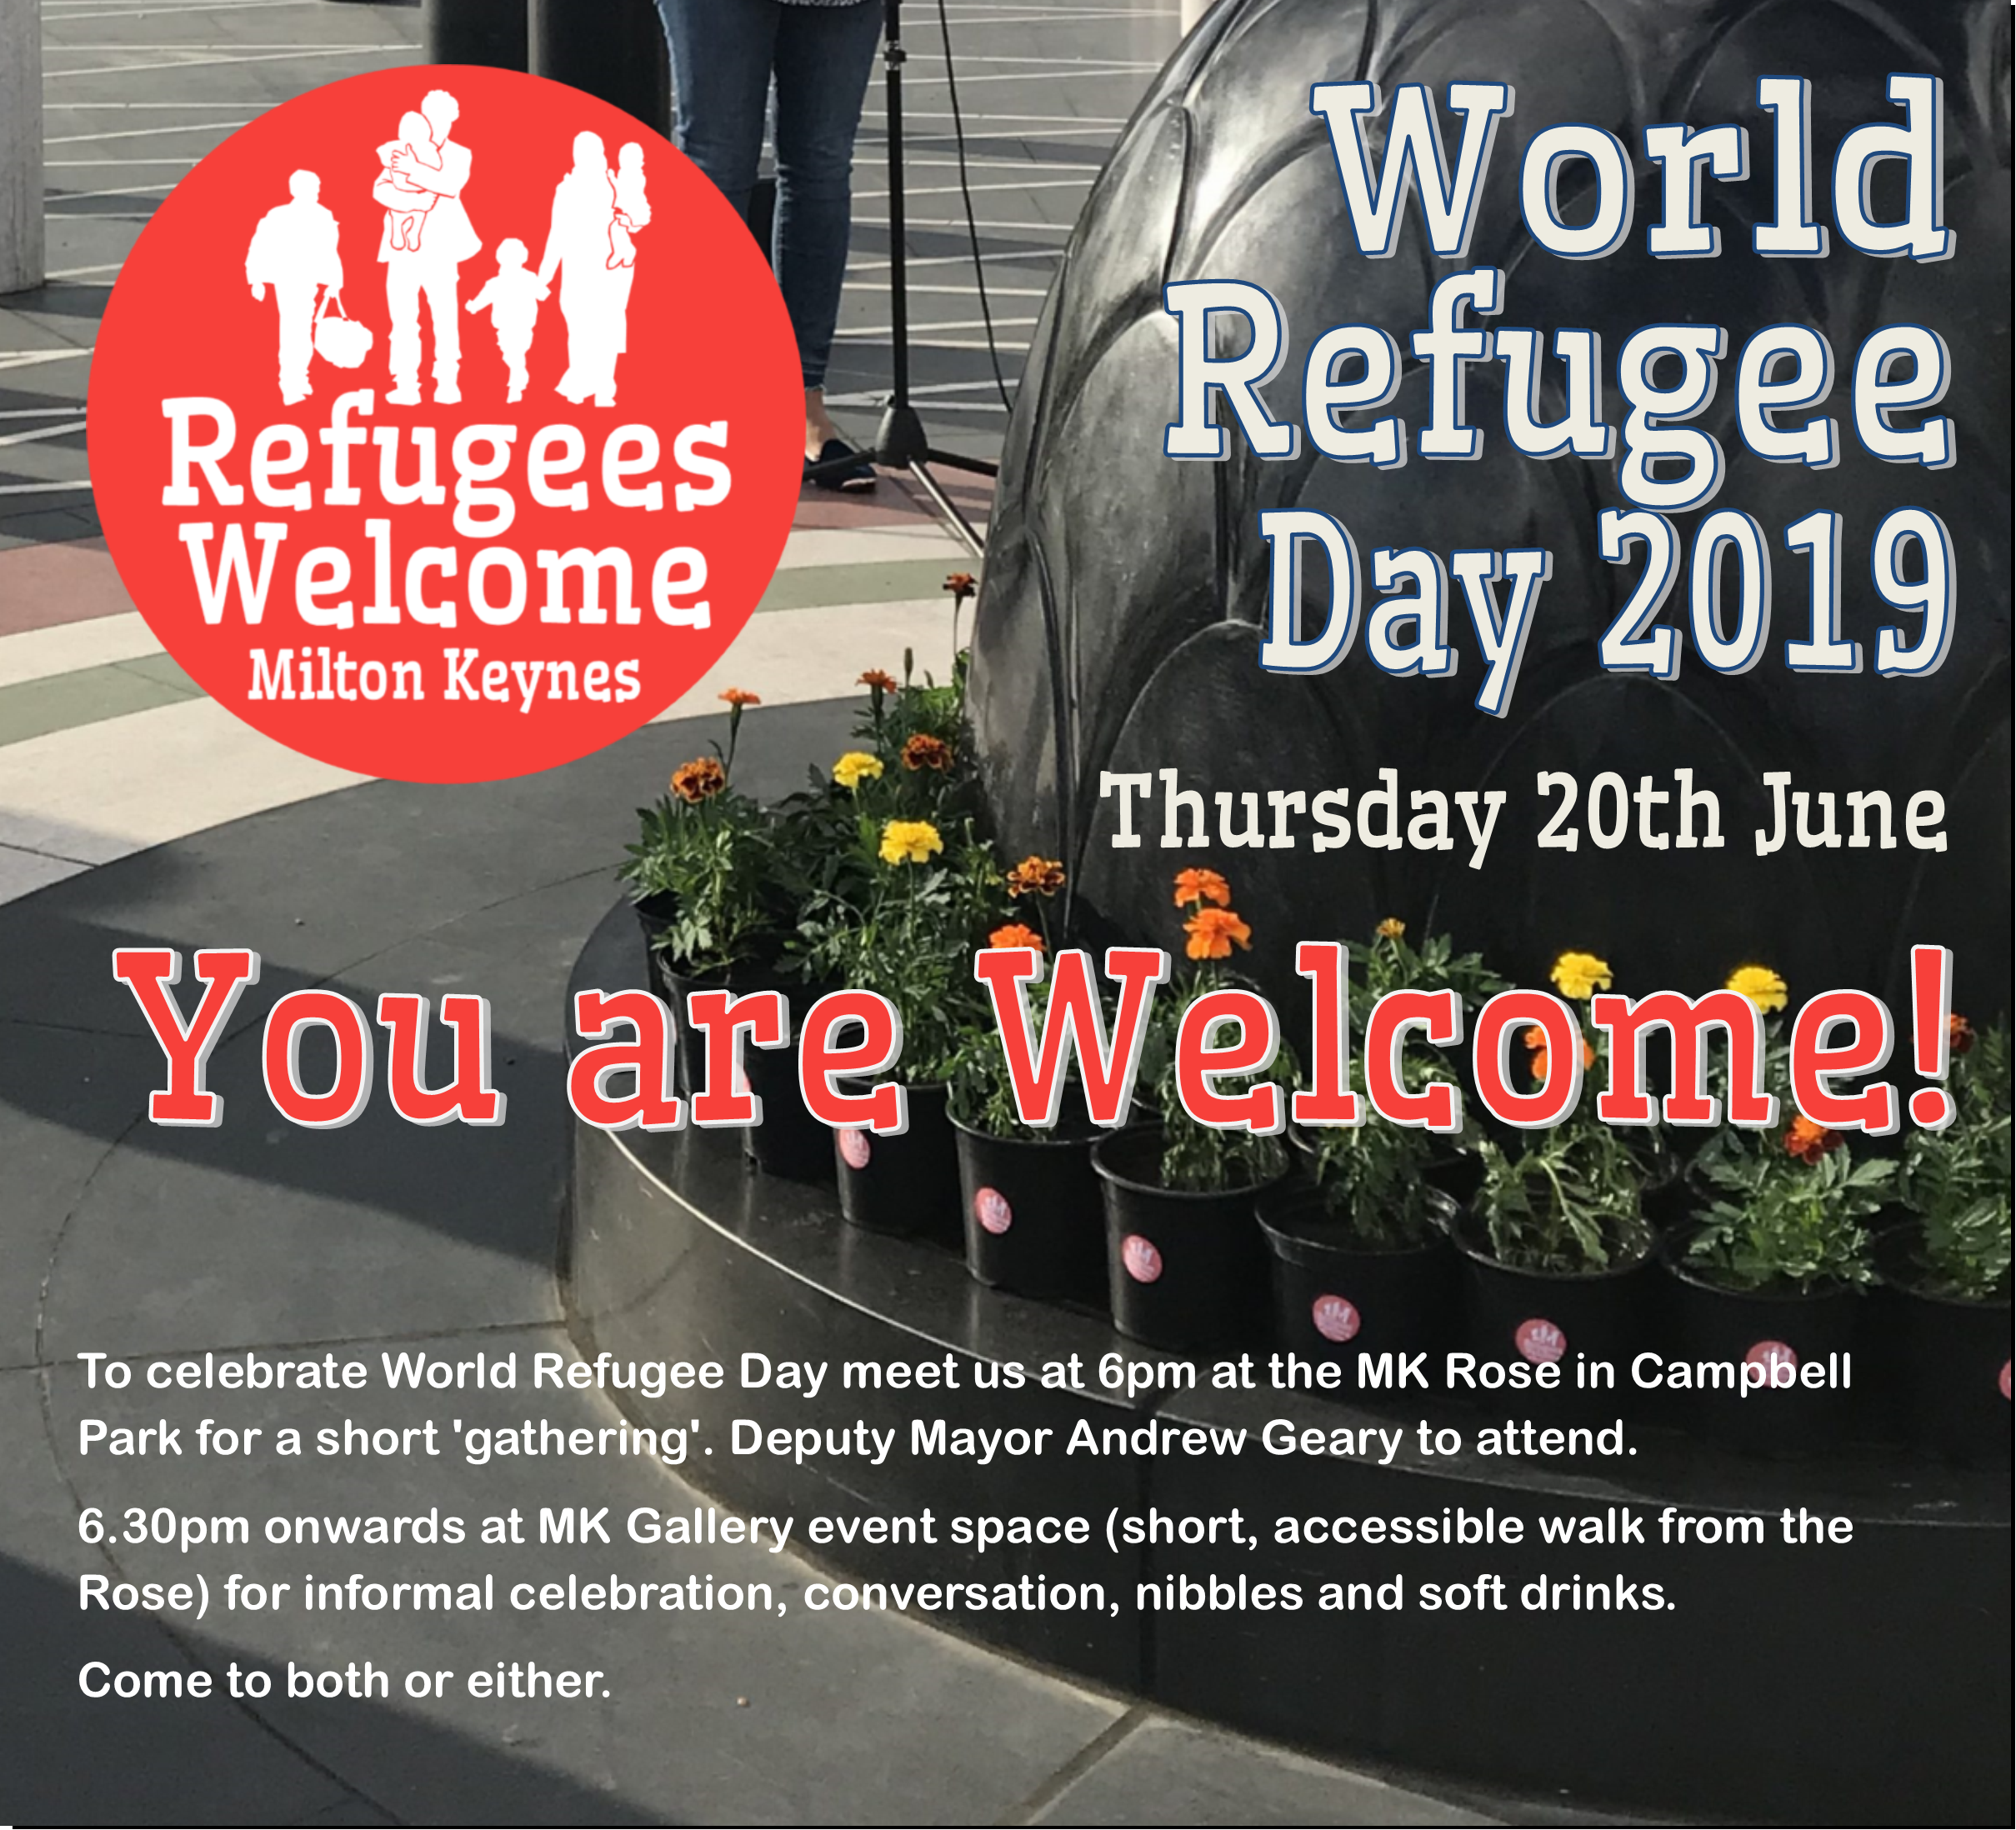 World Refugee Day: You are Welcome!